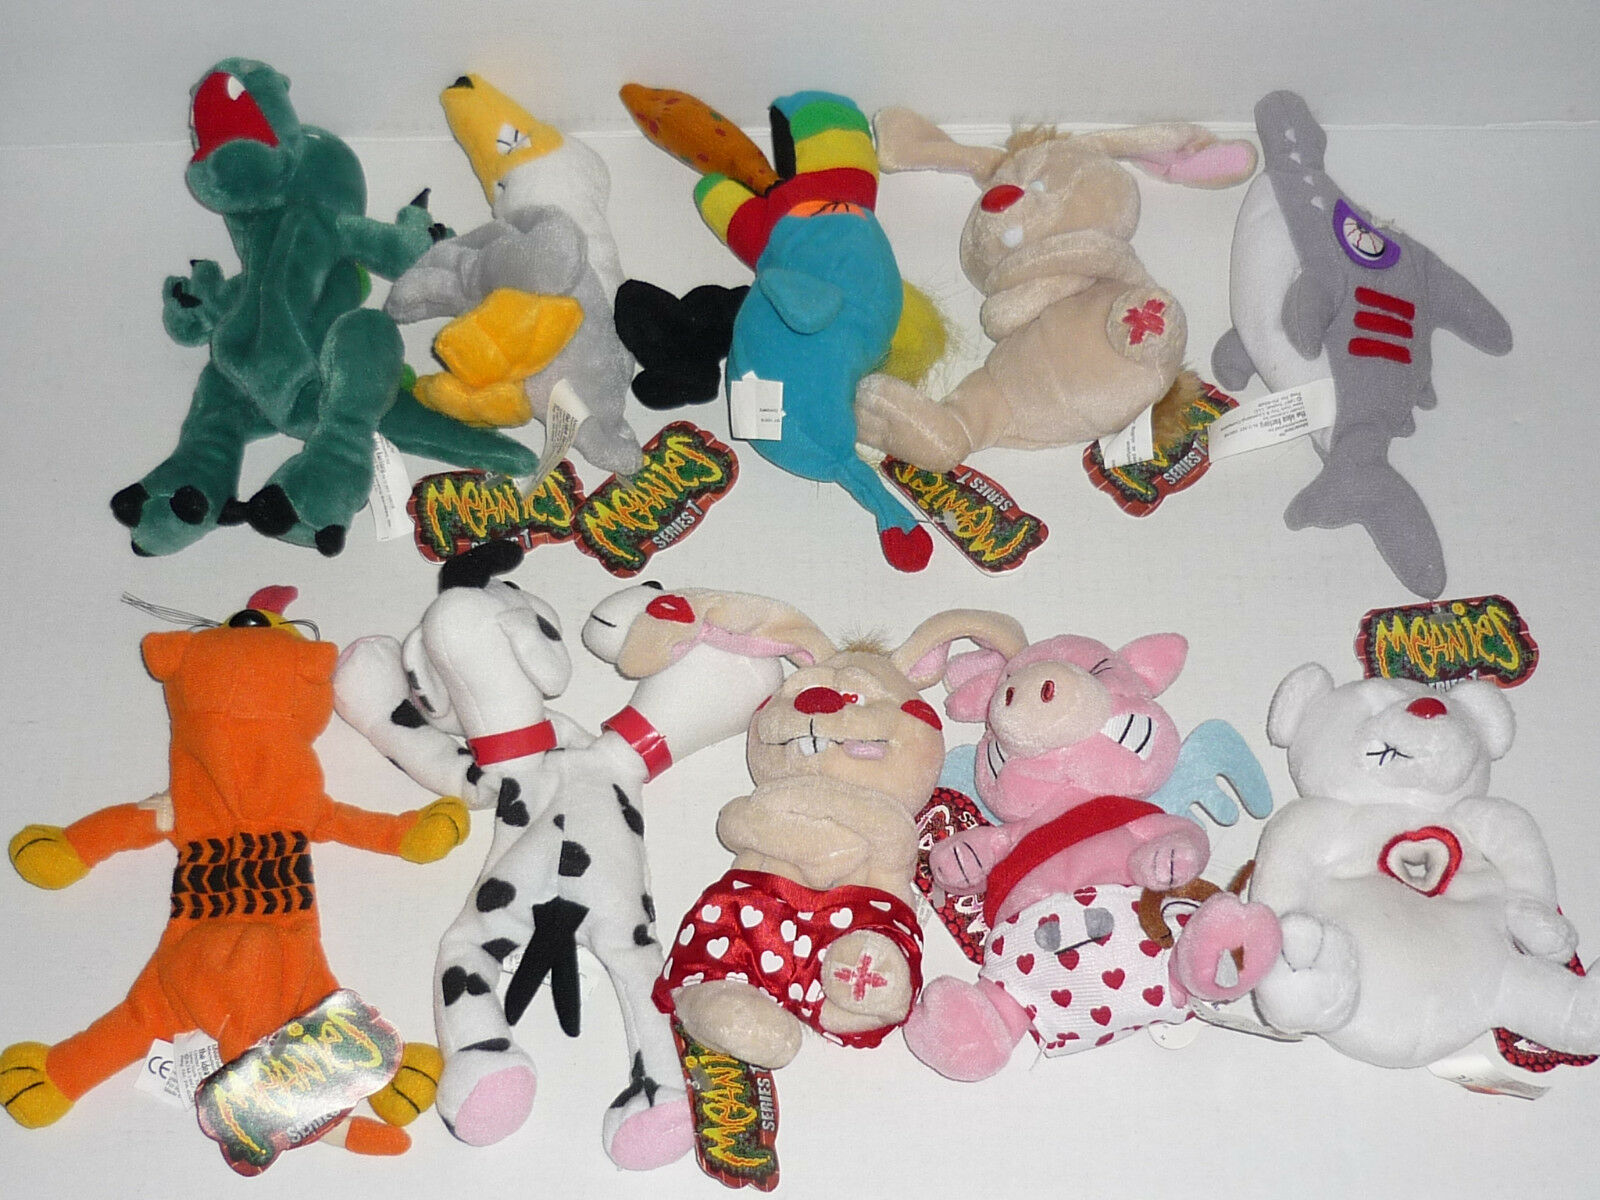 Vintage Meanie Beanie Babies Lot Lot Lot of 10 Series 1 & Valentines NWT NEW 242f17